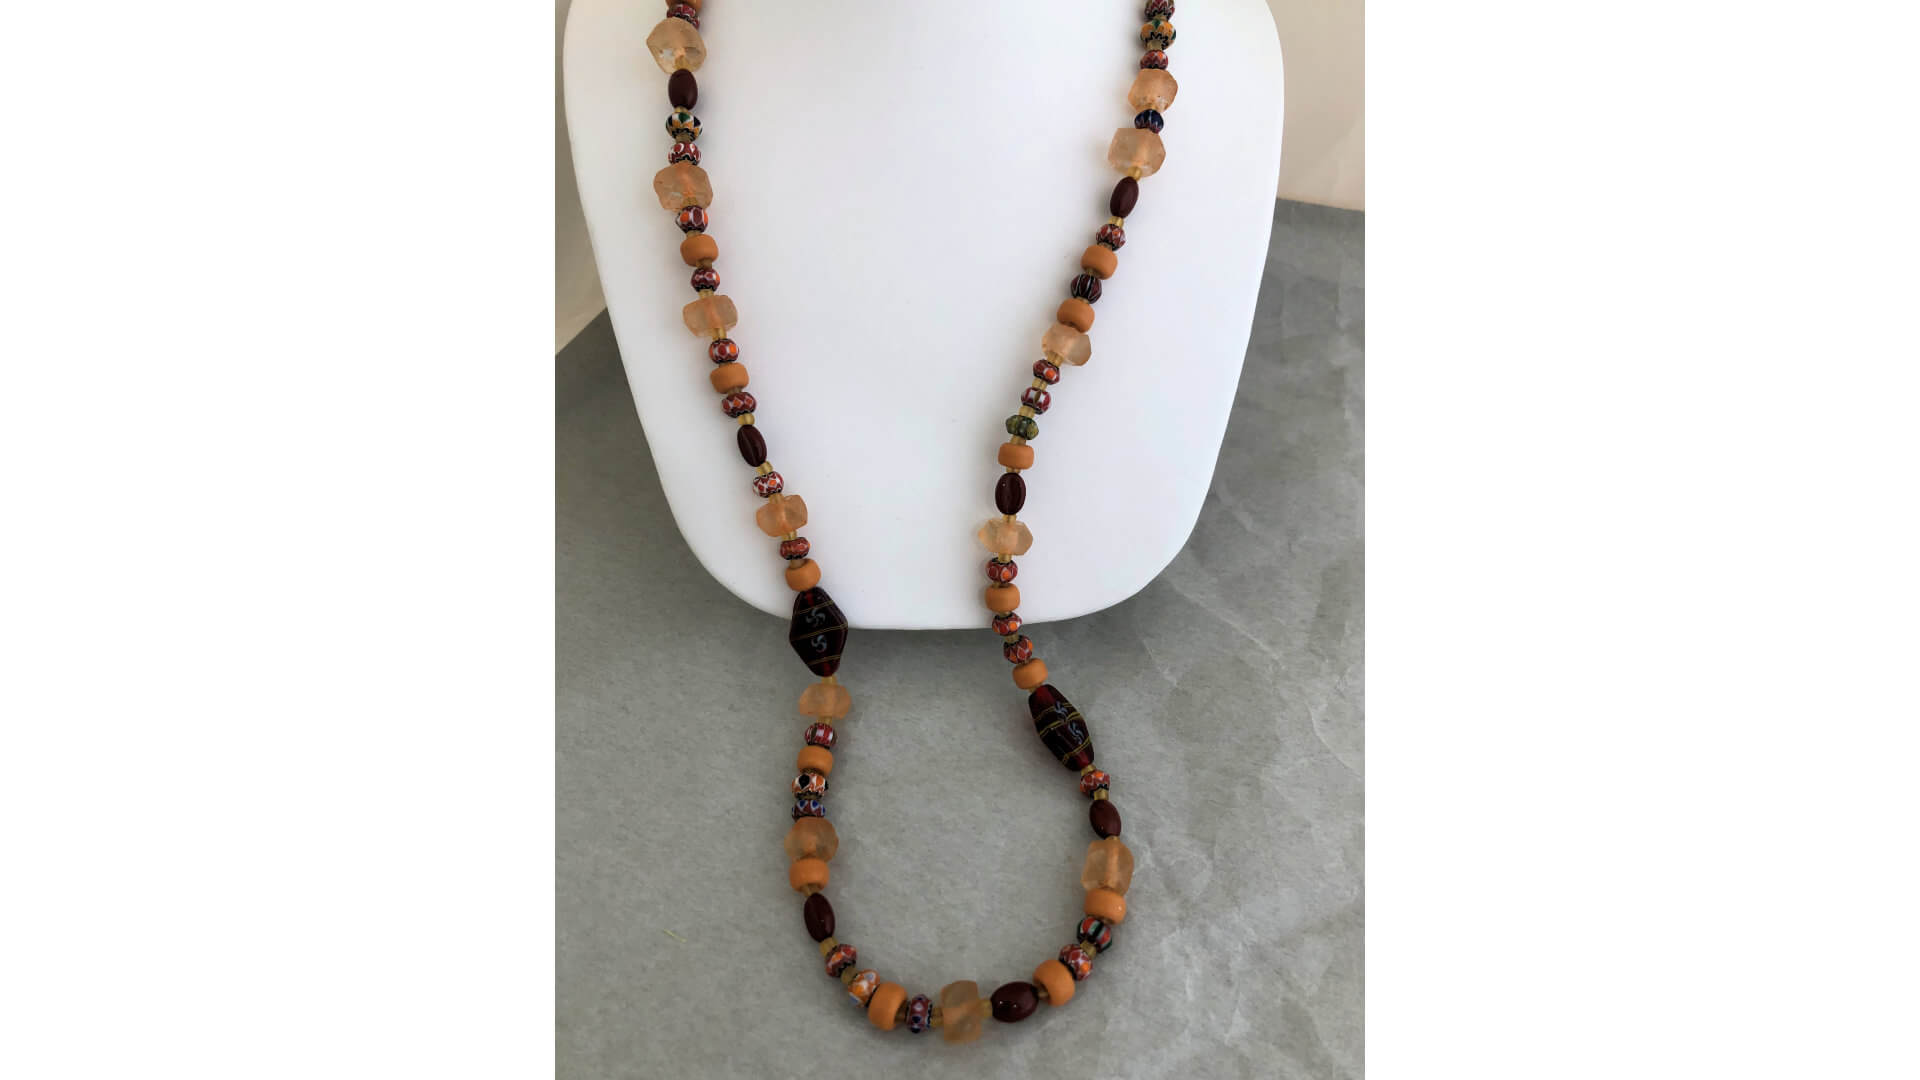 Copper and Burnt Orange Beaded Necklace by Susan Hazer Designs